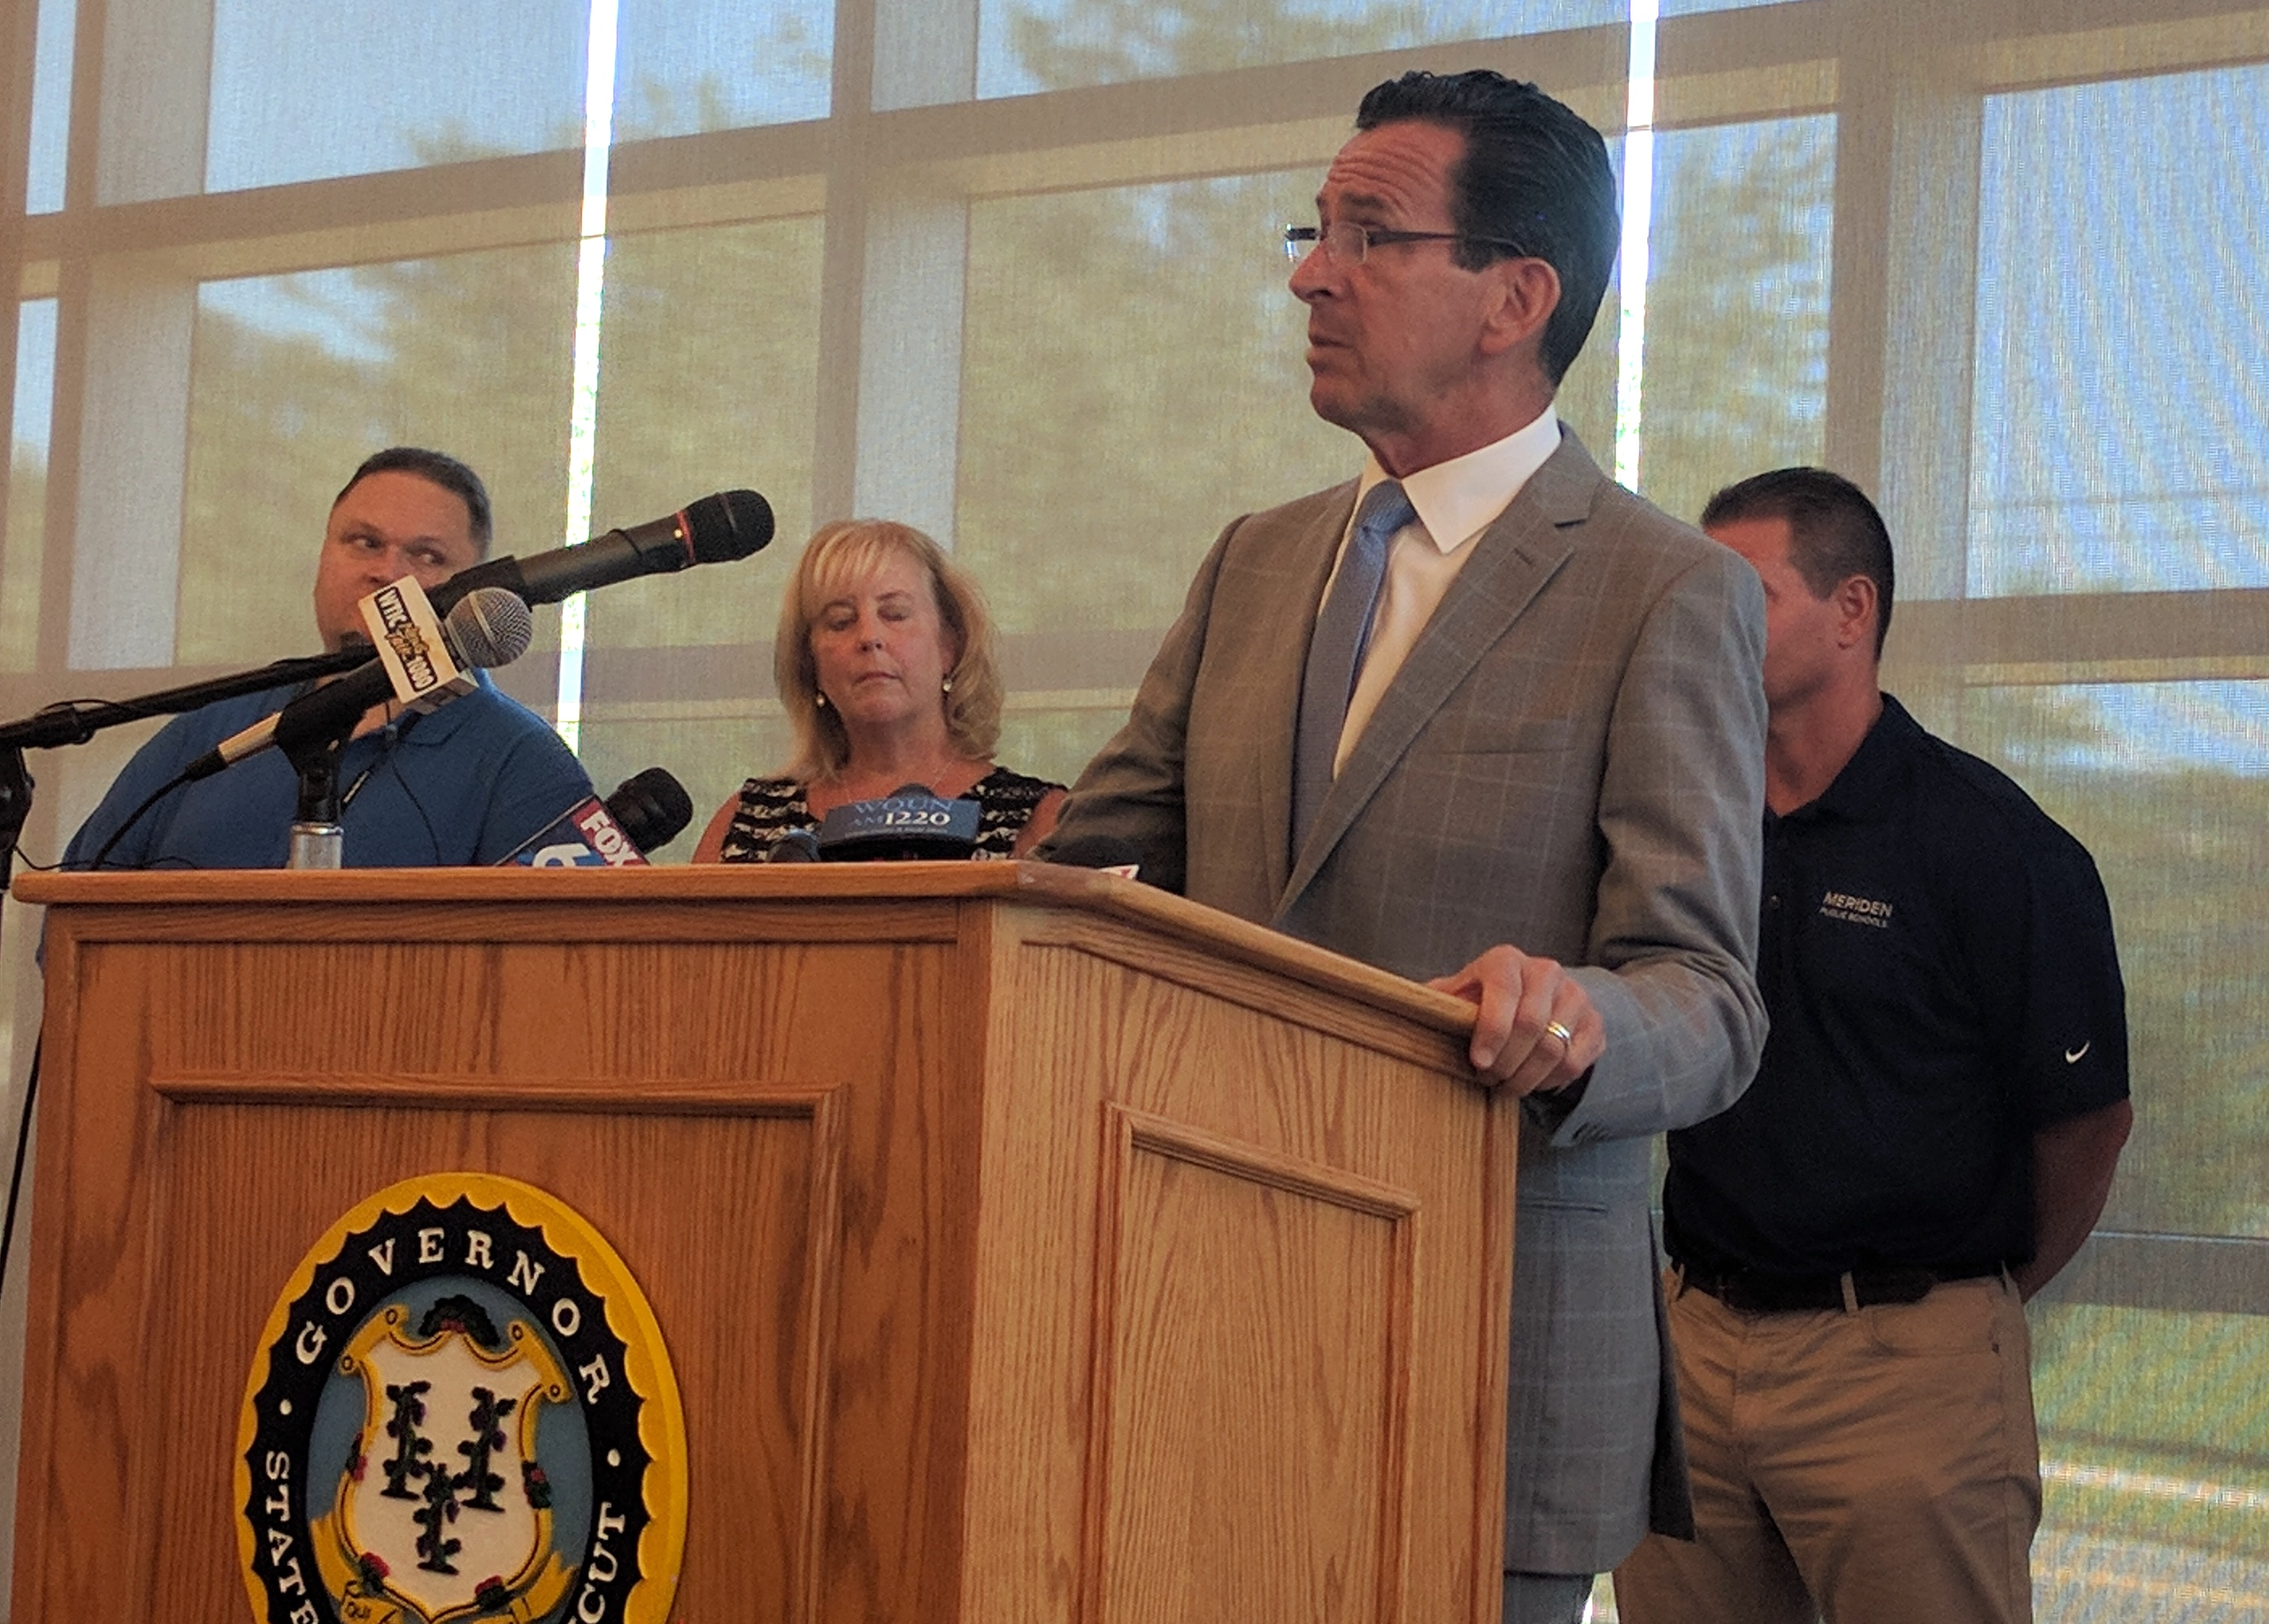 Without a budget, Malloy says he will shift state aid to poorer school districts